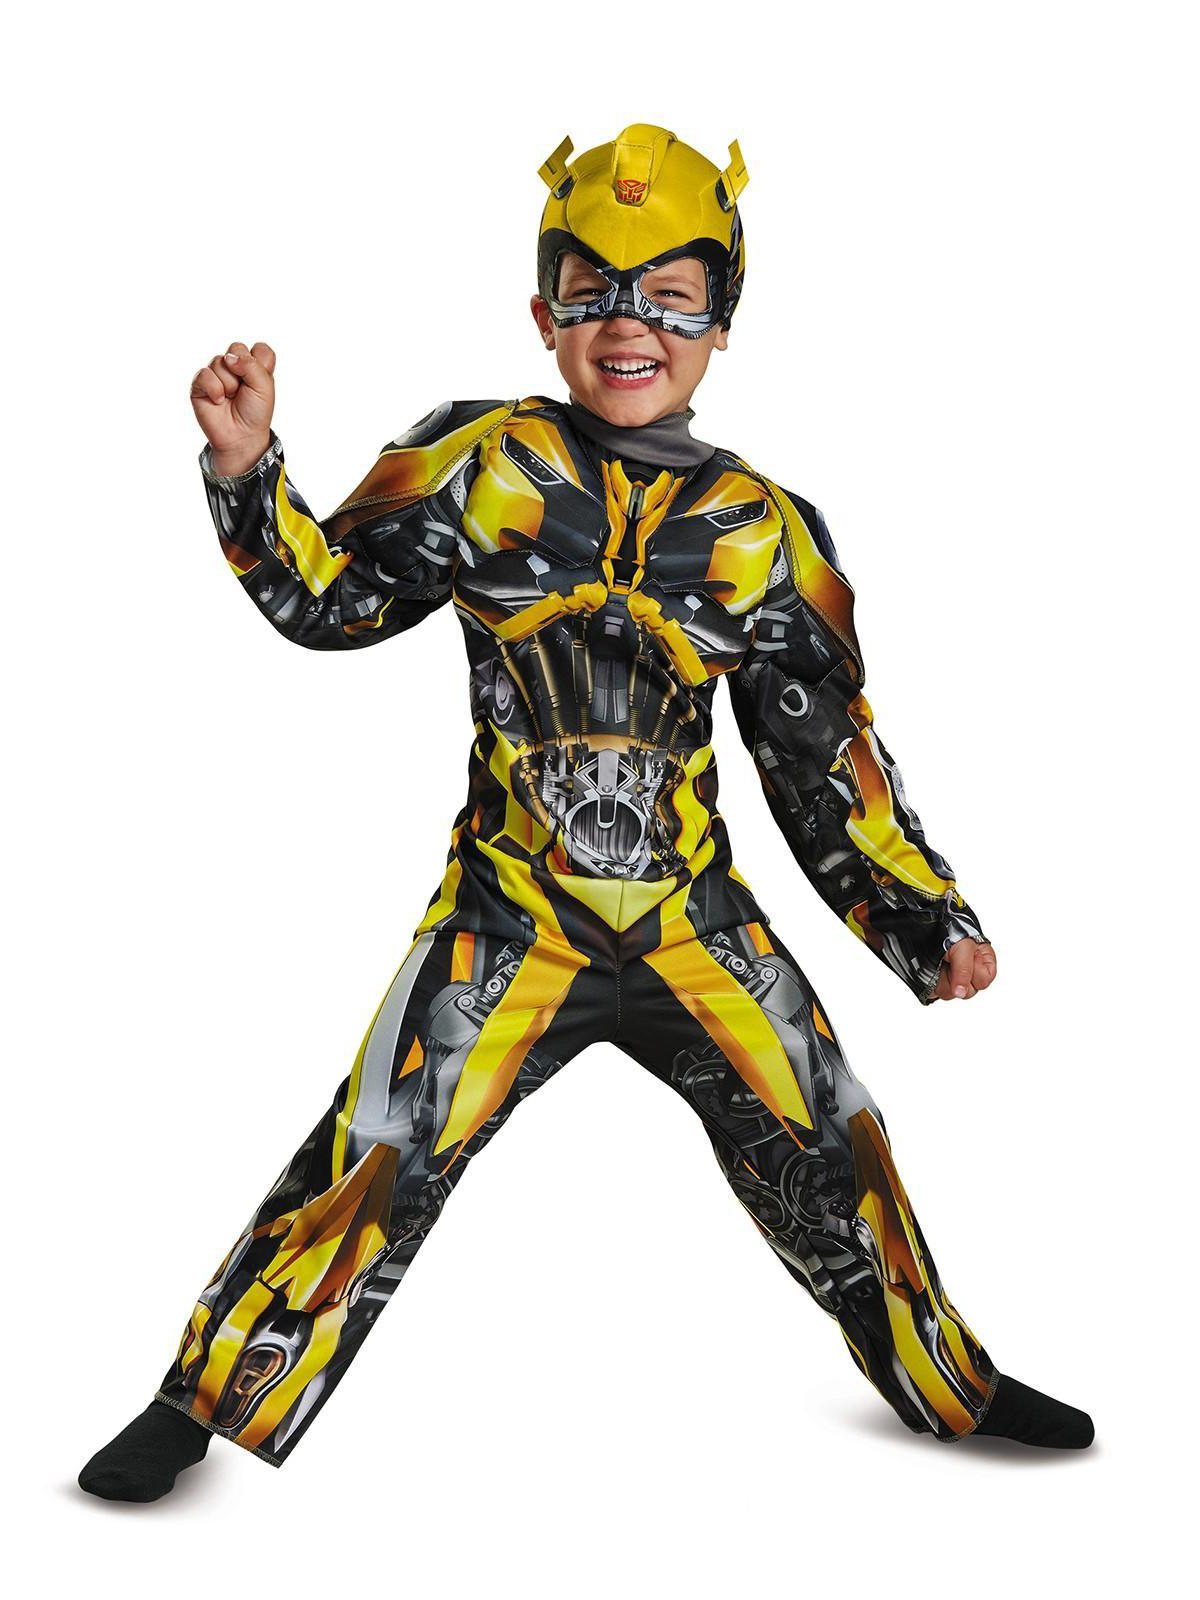 Transformers - Bumblebee Children's Muscle Costume DI22331-S